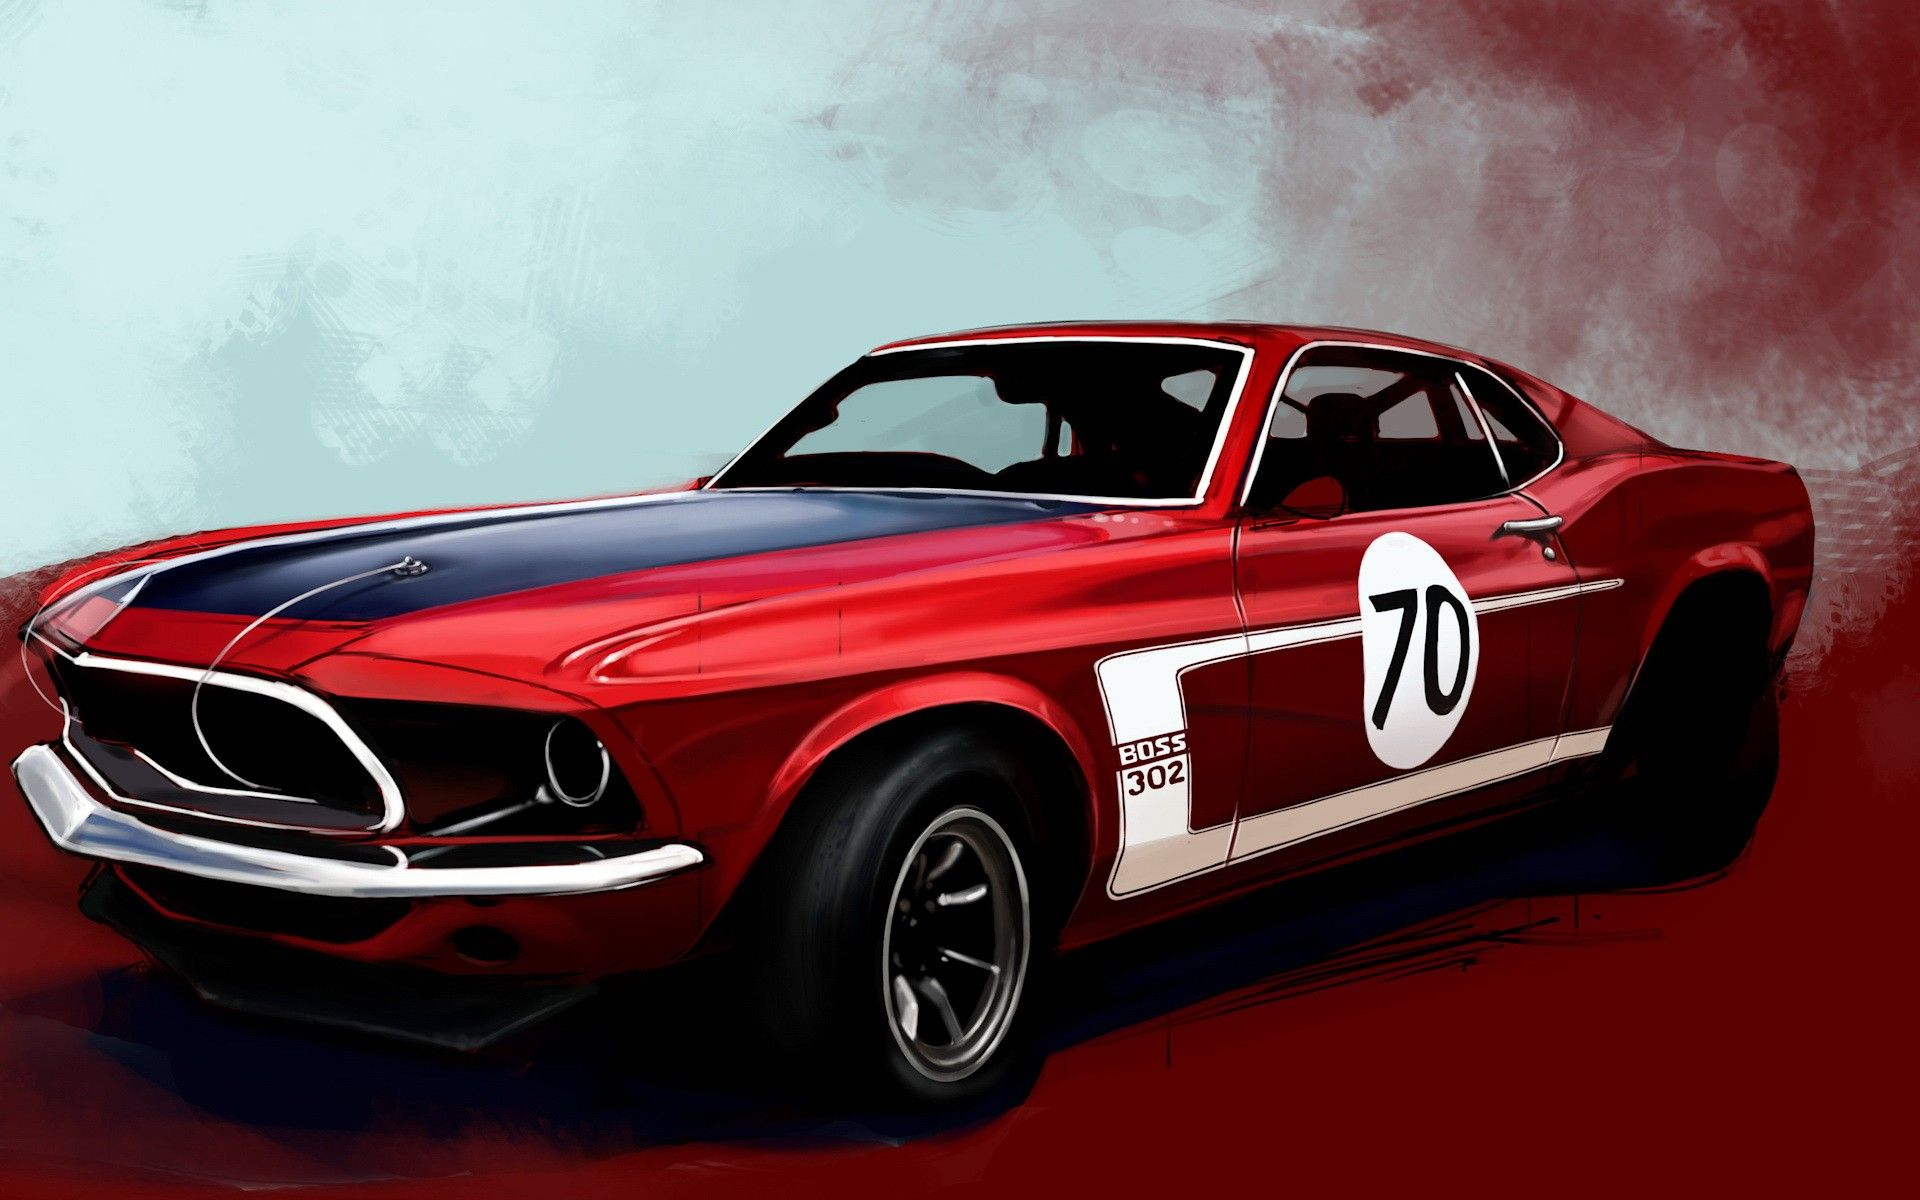 Classic Sport Cars Wallpapers Top Free Classic Sport Cars Backgrounds Wallpaperaccess